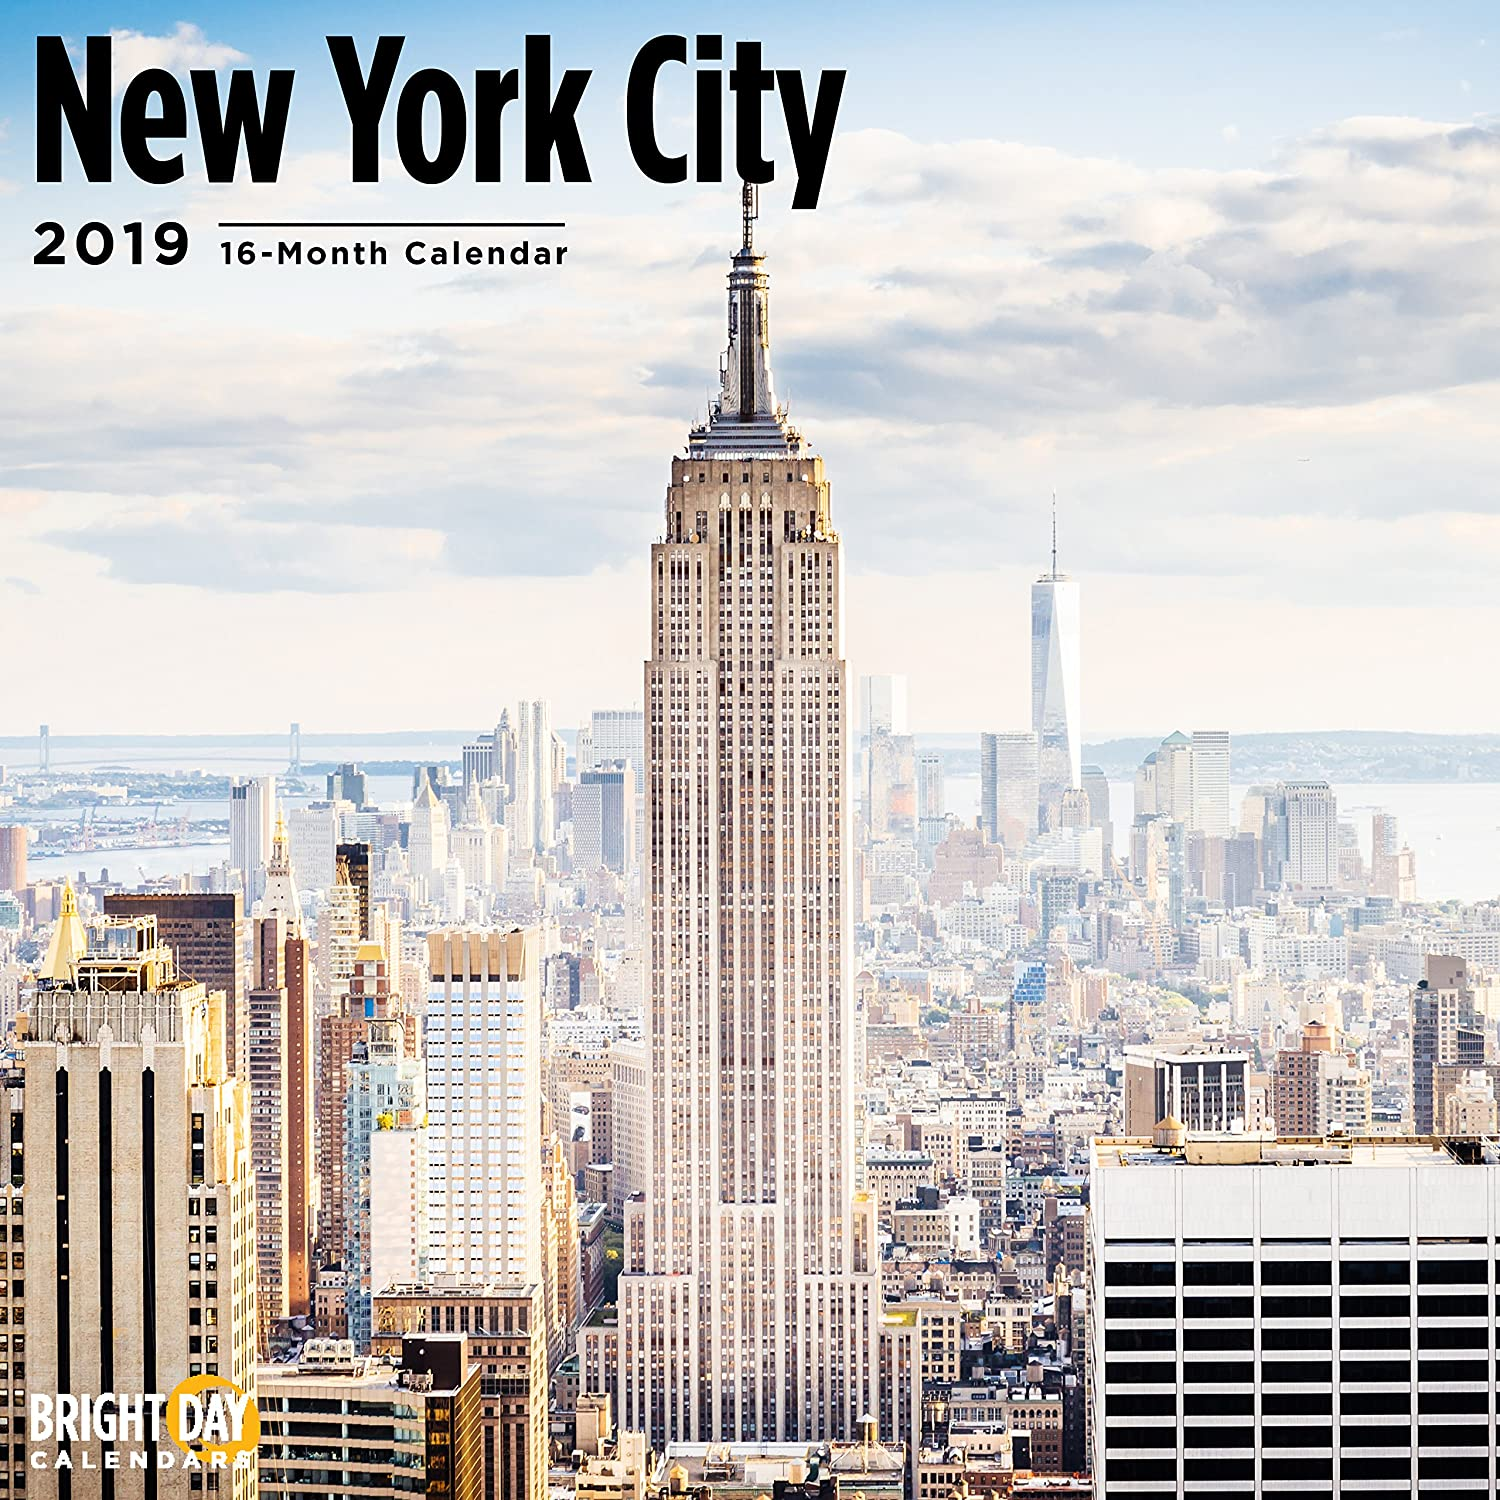 Ny School Calendar 2019-16 Amazon.com: Bright Day Calendars USA Home Towns Wall Calendars 16